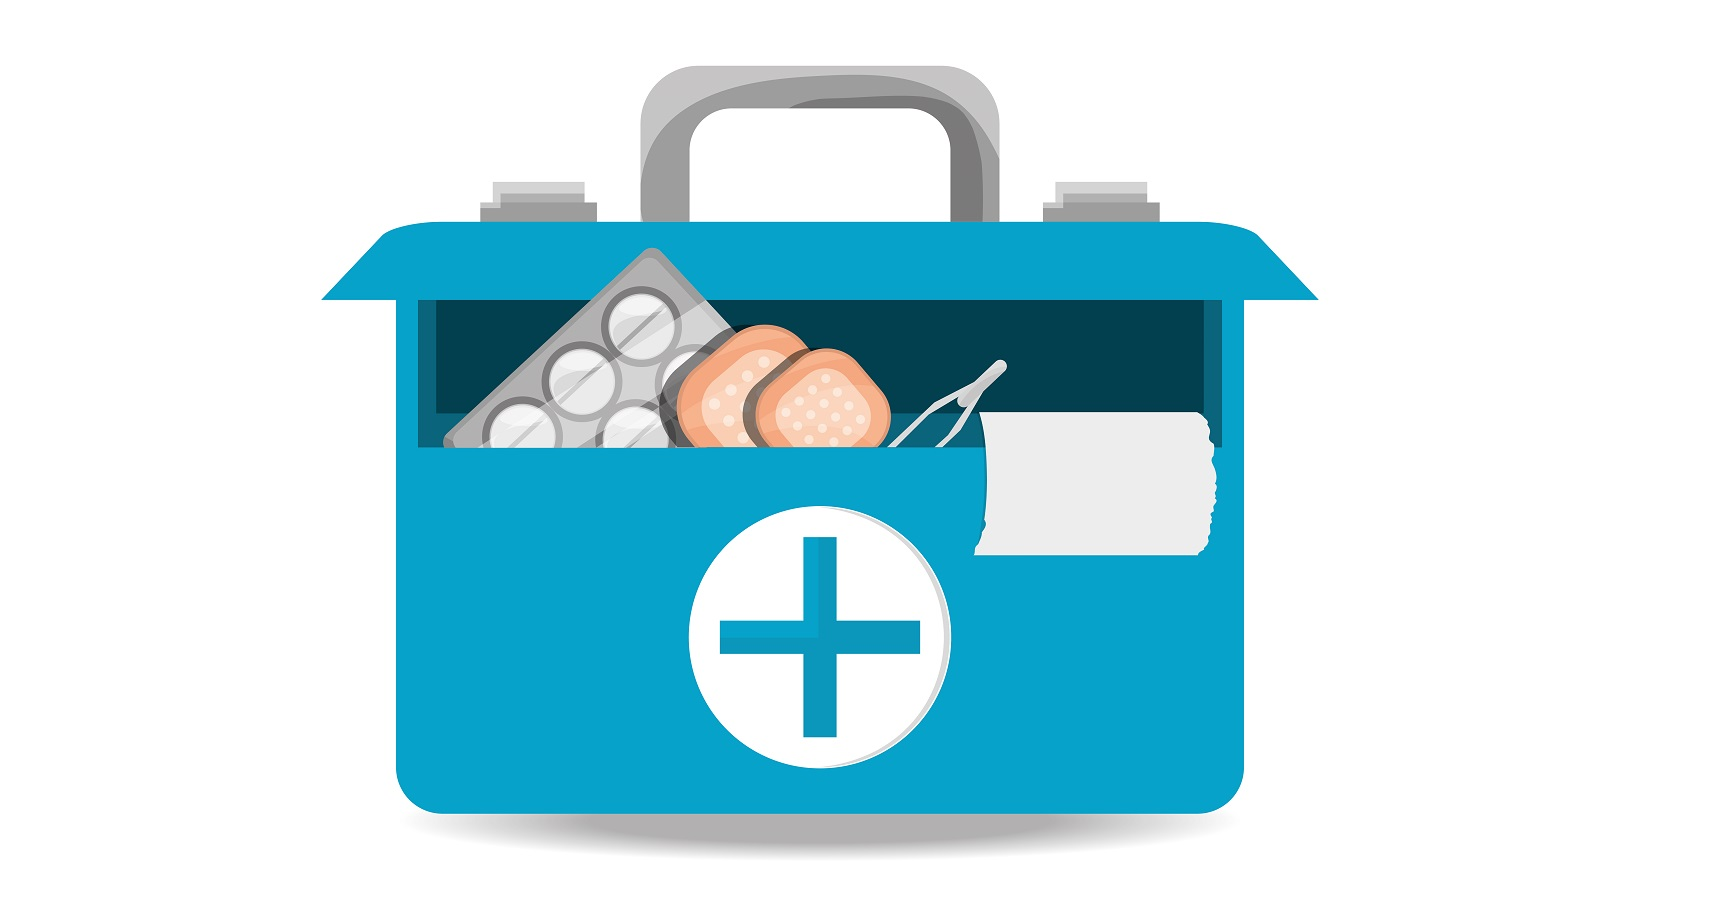 suitcase first aid kit with medical tools